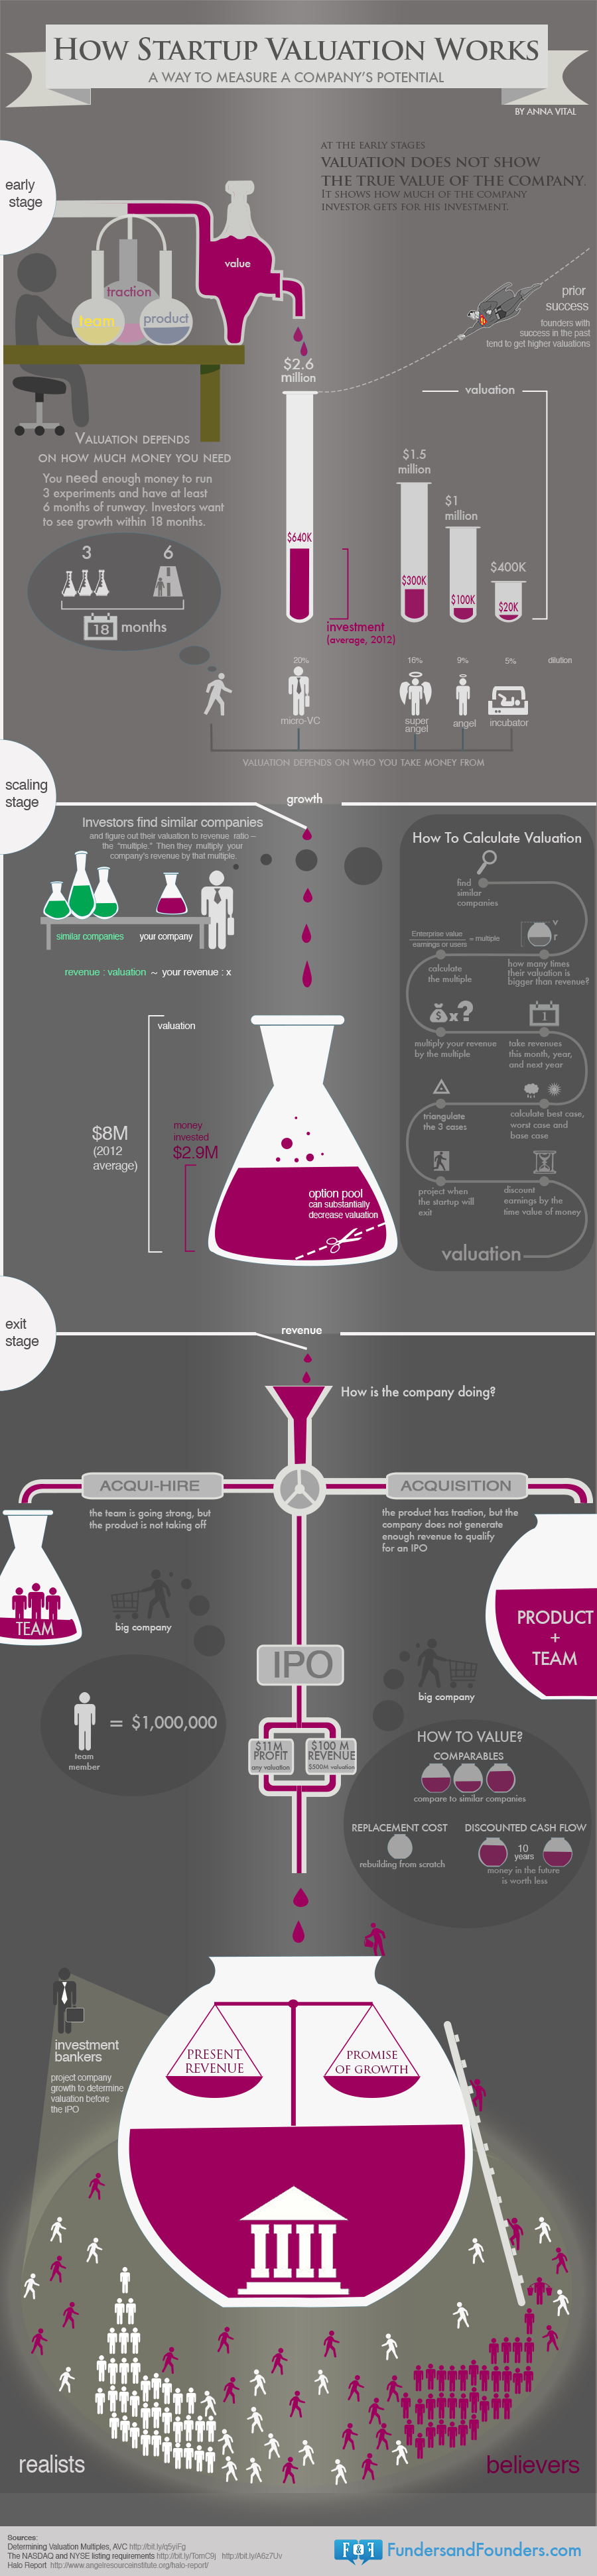 how startup valuation works infographic business valuation jobs